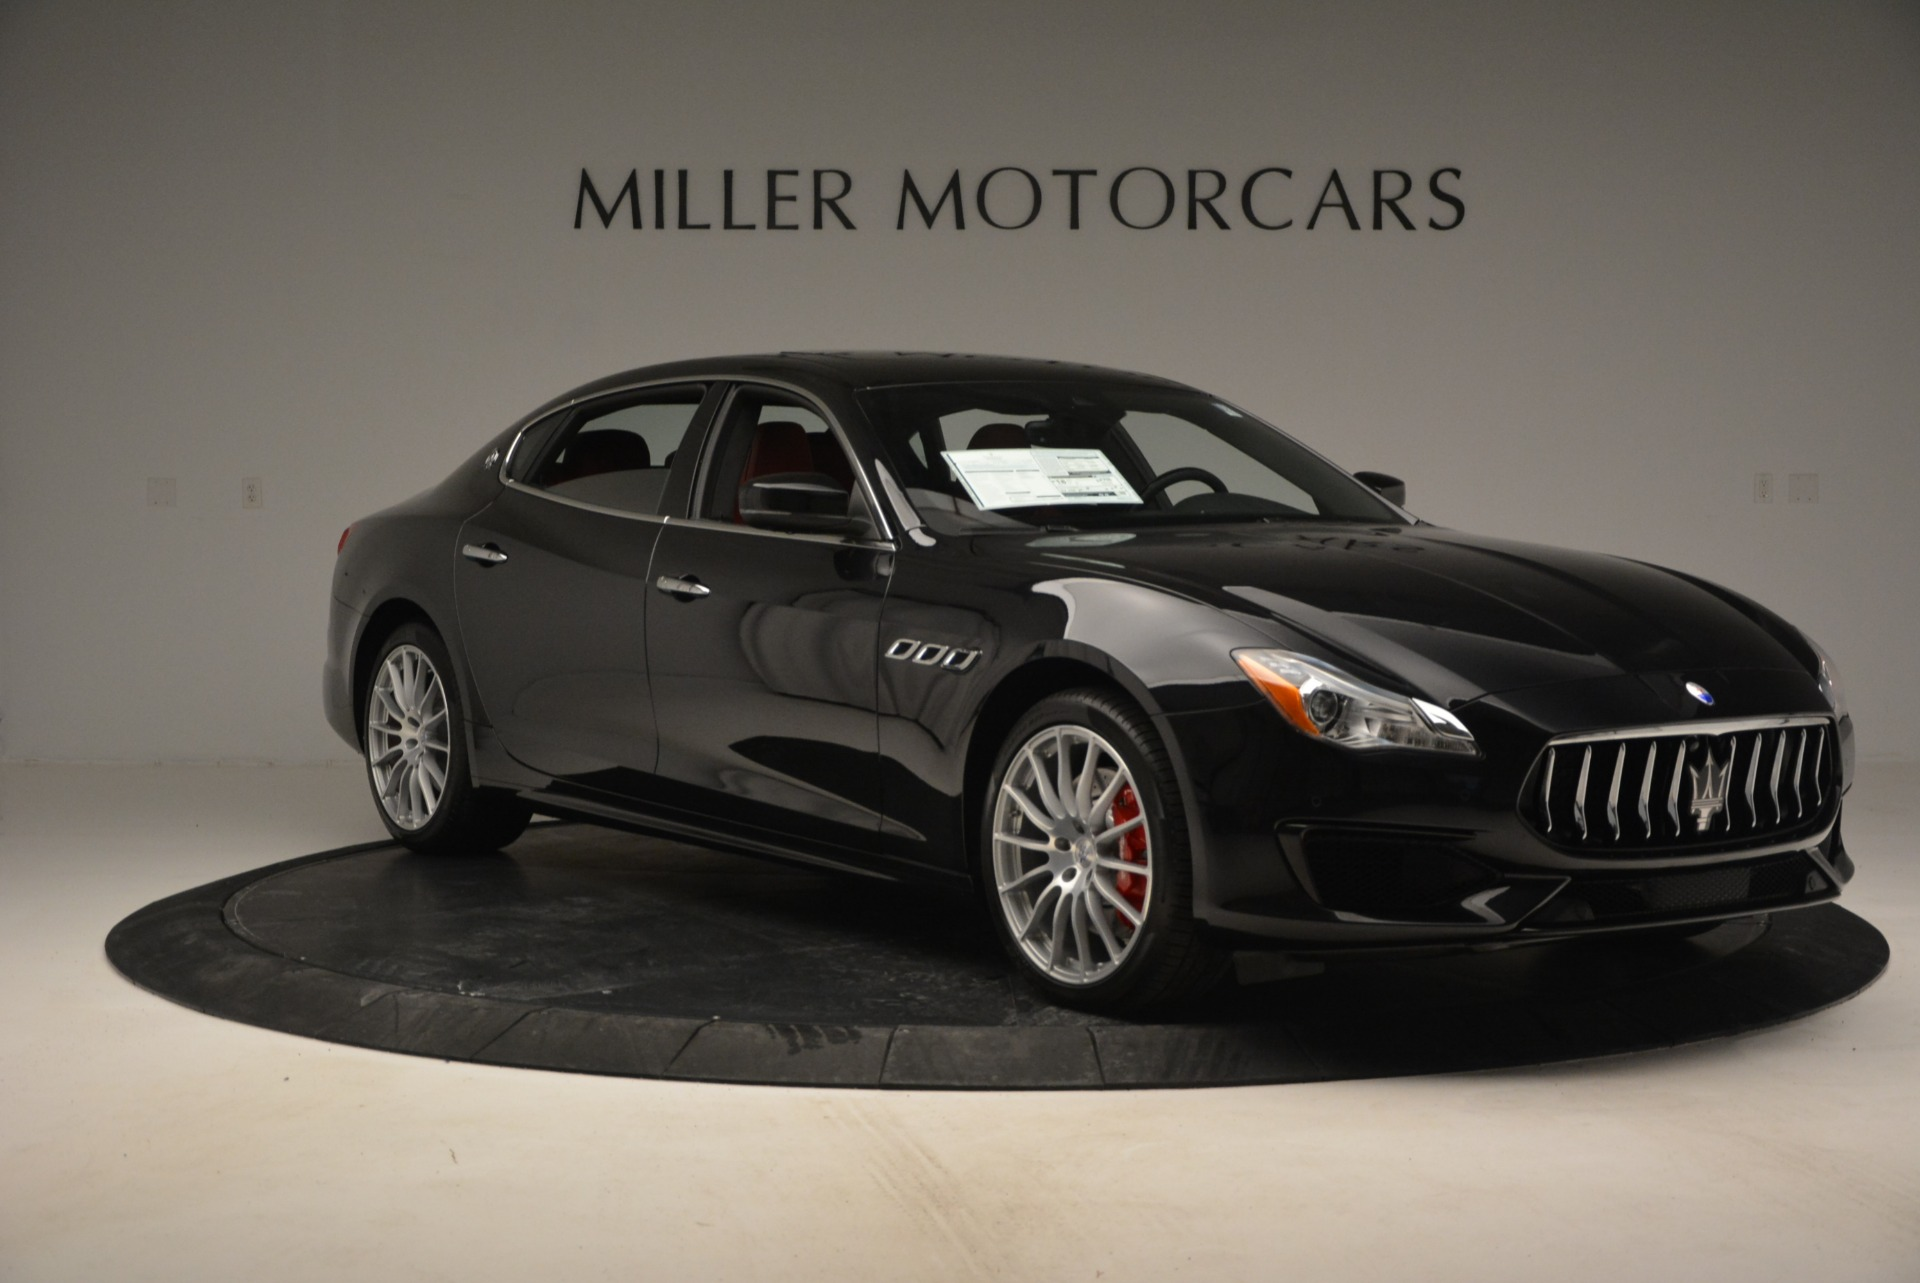 New 2017 Maserati Quattroporte S Q4 GranSport For Sale In Westport, CT 790_p11